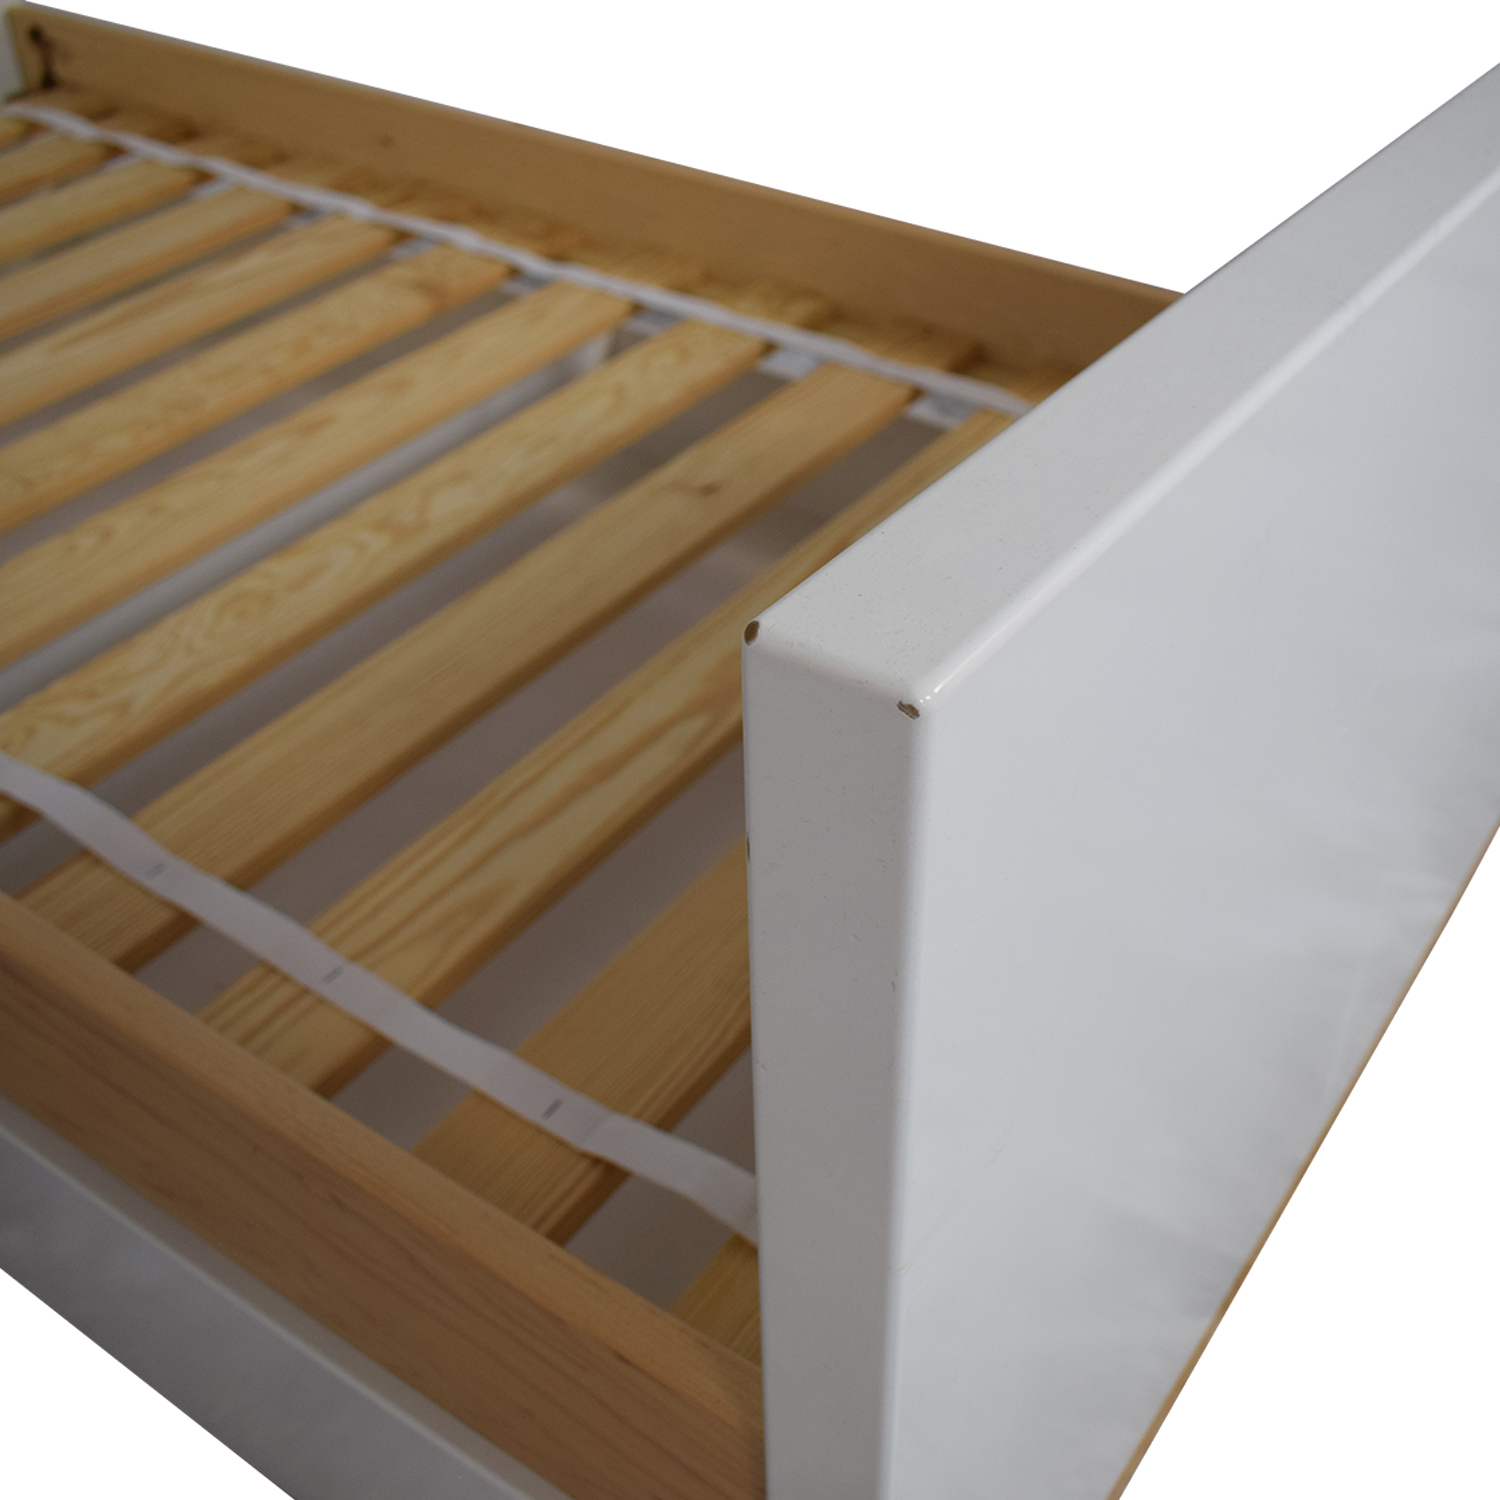 shop Room & Board Moda White and Maple Twin Bed Room & Board Bed Frames